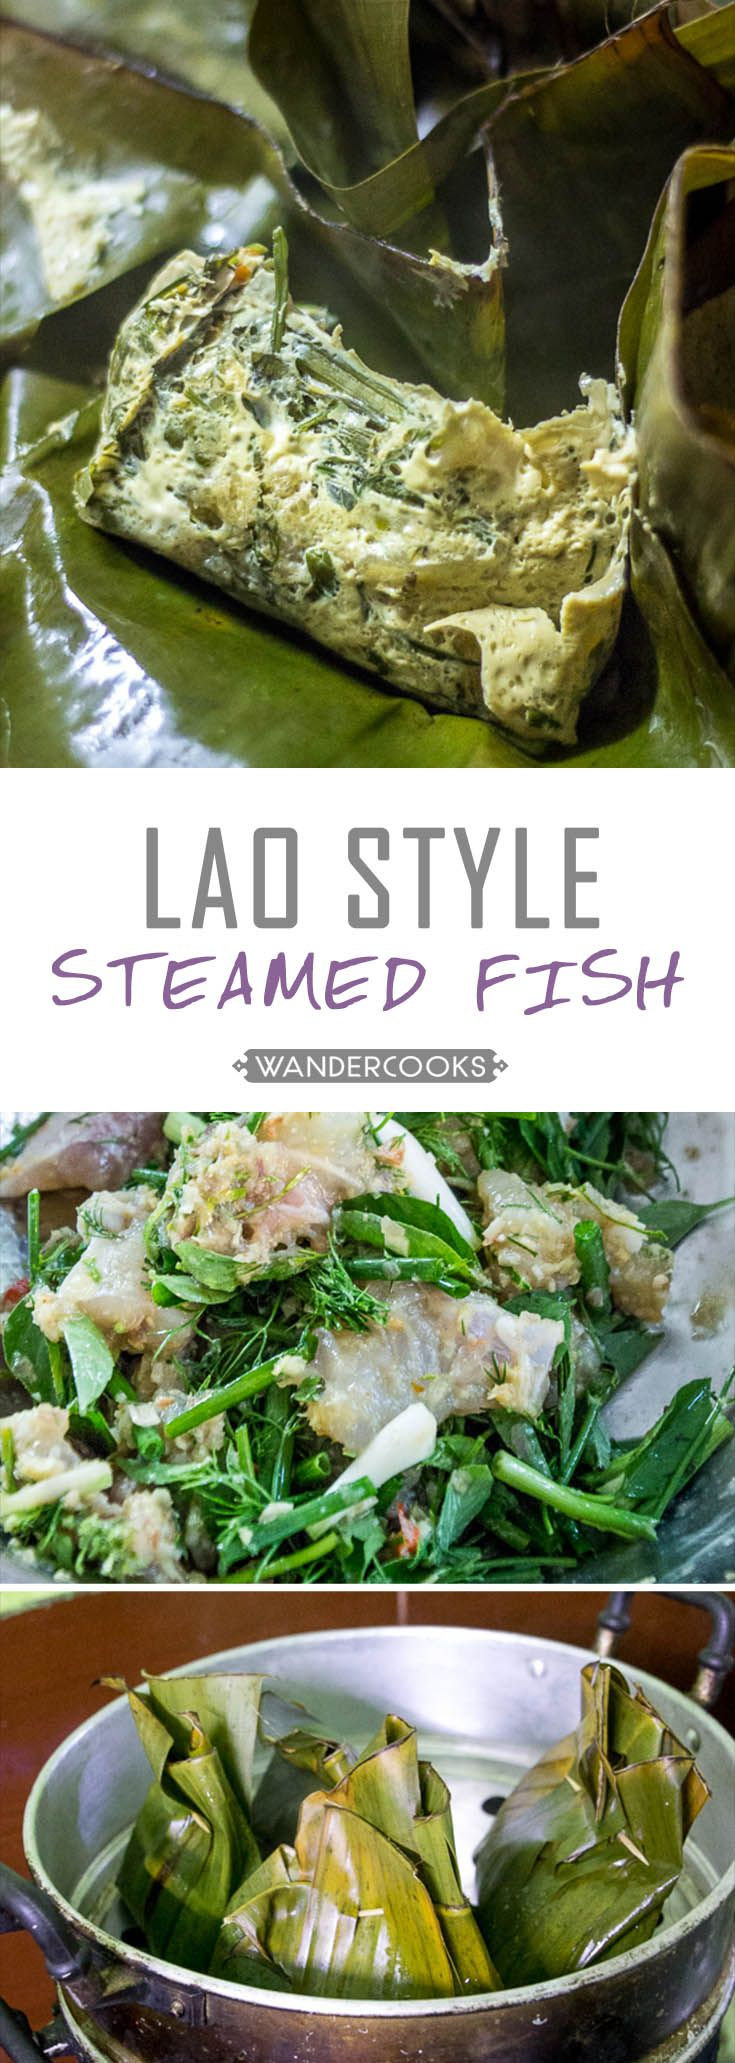 Lao Steamed Fish (Mok Pa) - Bursting fresh from the banana leaf, this flavour infused fish is melt-in-your-mouth goodness. Gluten free. | wandercooks.com via @wandercooks